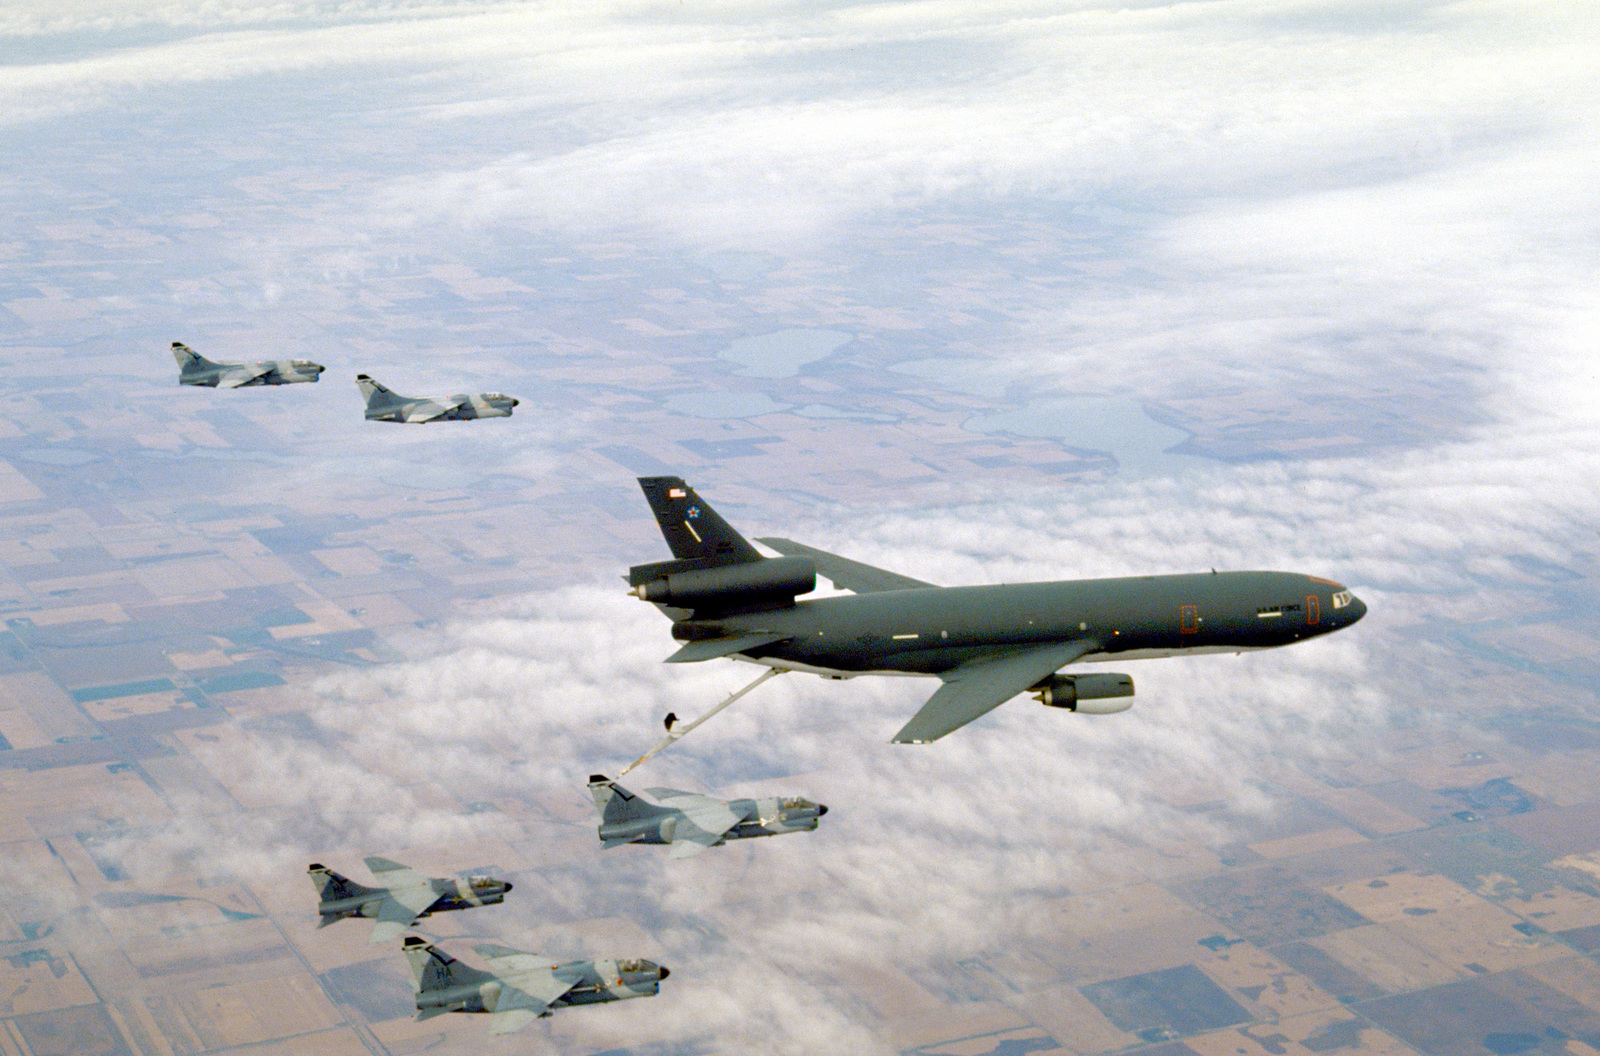 A 185th Tactical Fighter Group (185th TFG) A-7 Corsair II aircraft from the Air National Guard lines up for refueling from a 6th Aerial Refueling Squadron KC-10A Extender aircraft during Proud Visitor, a Headquarters, Strategic Air Command exercise. Other 185th TFG Corsairs fly in formation as they await refueling.